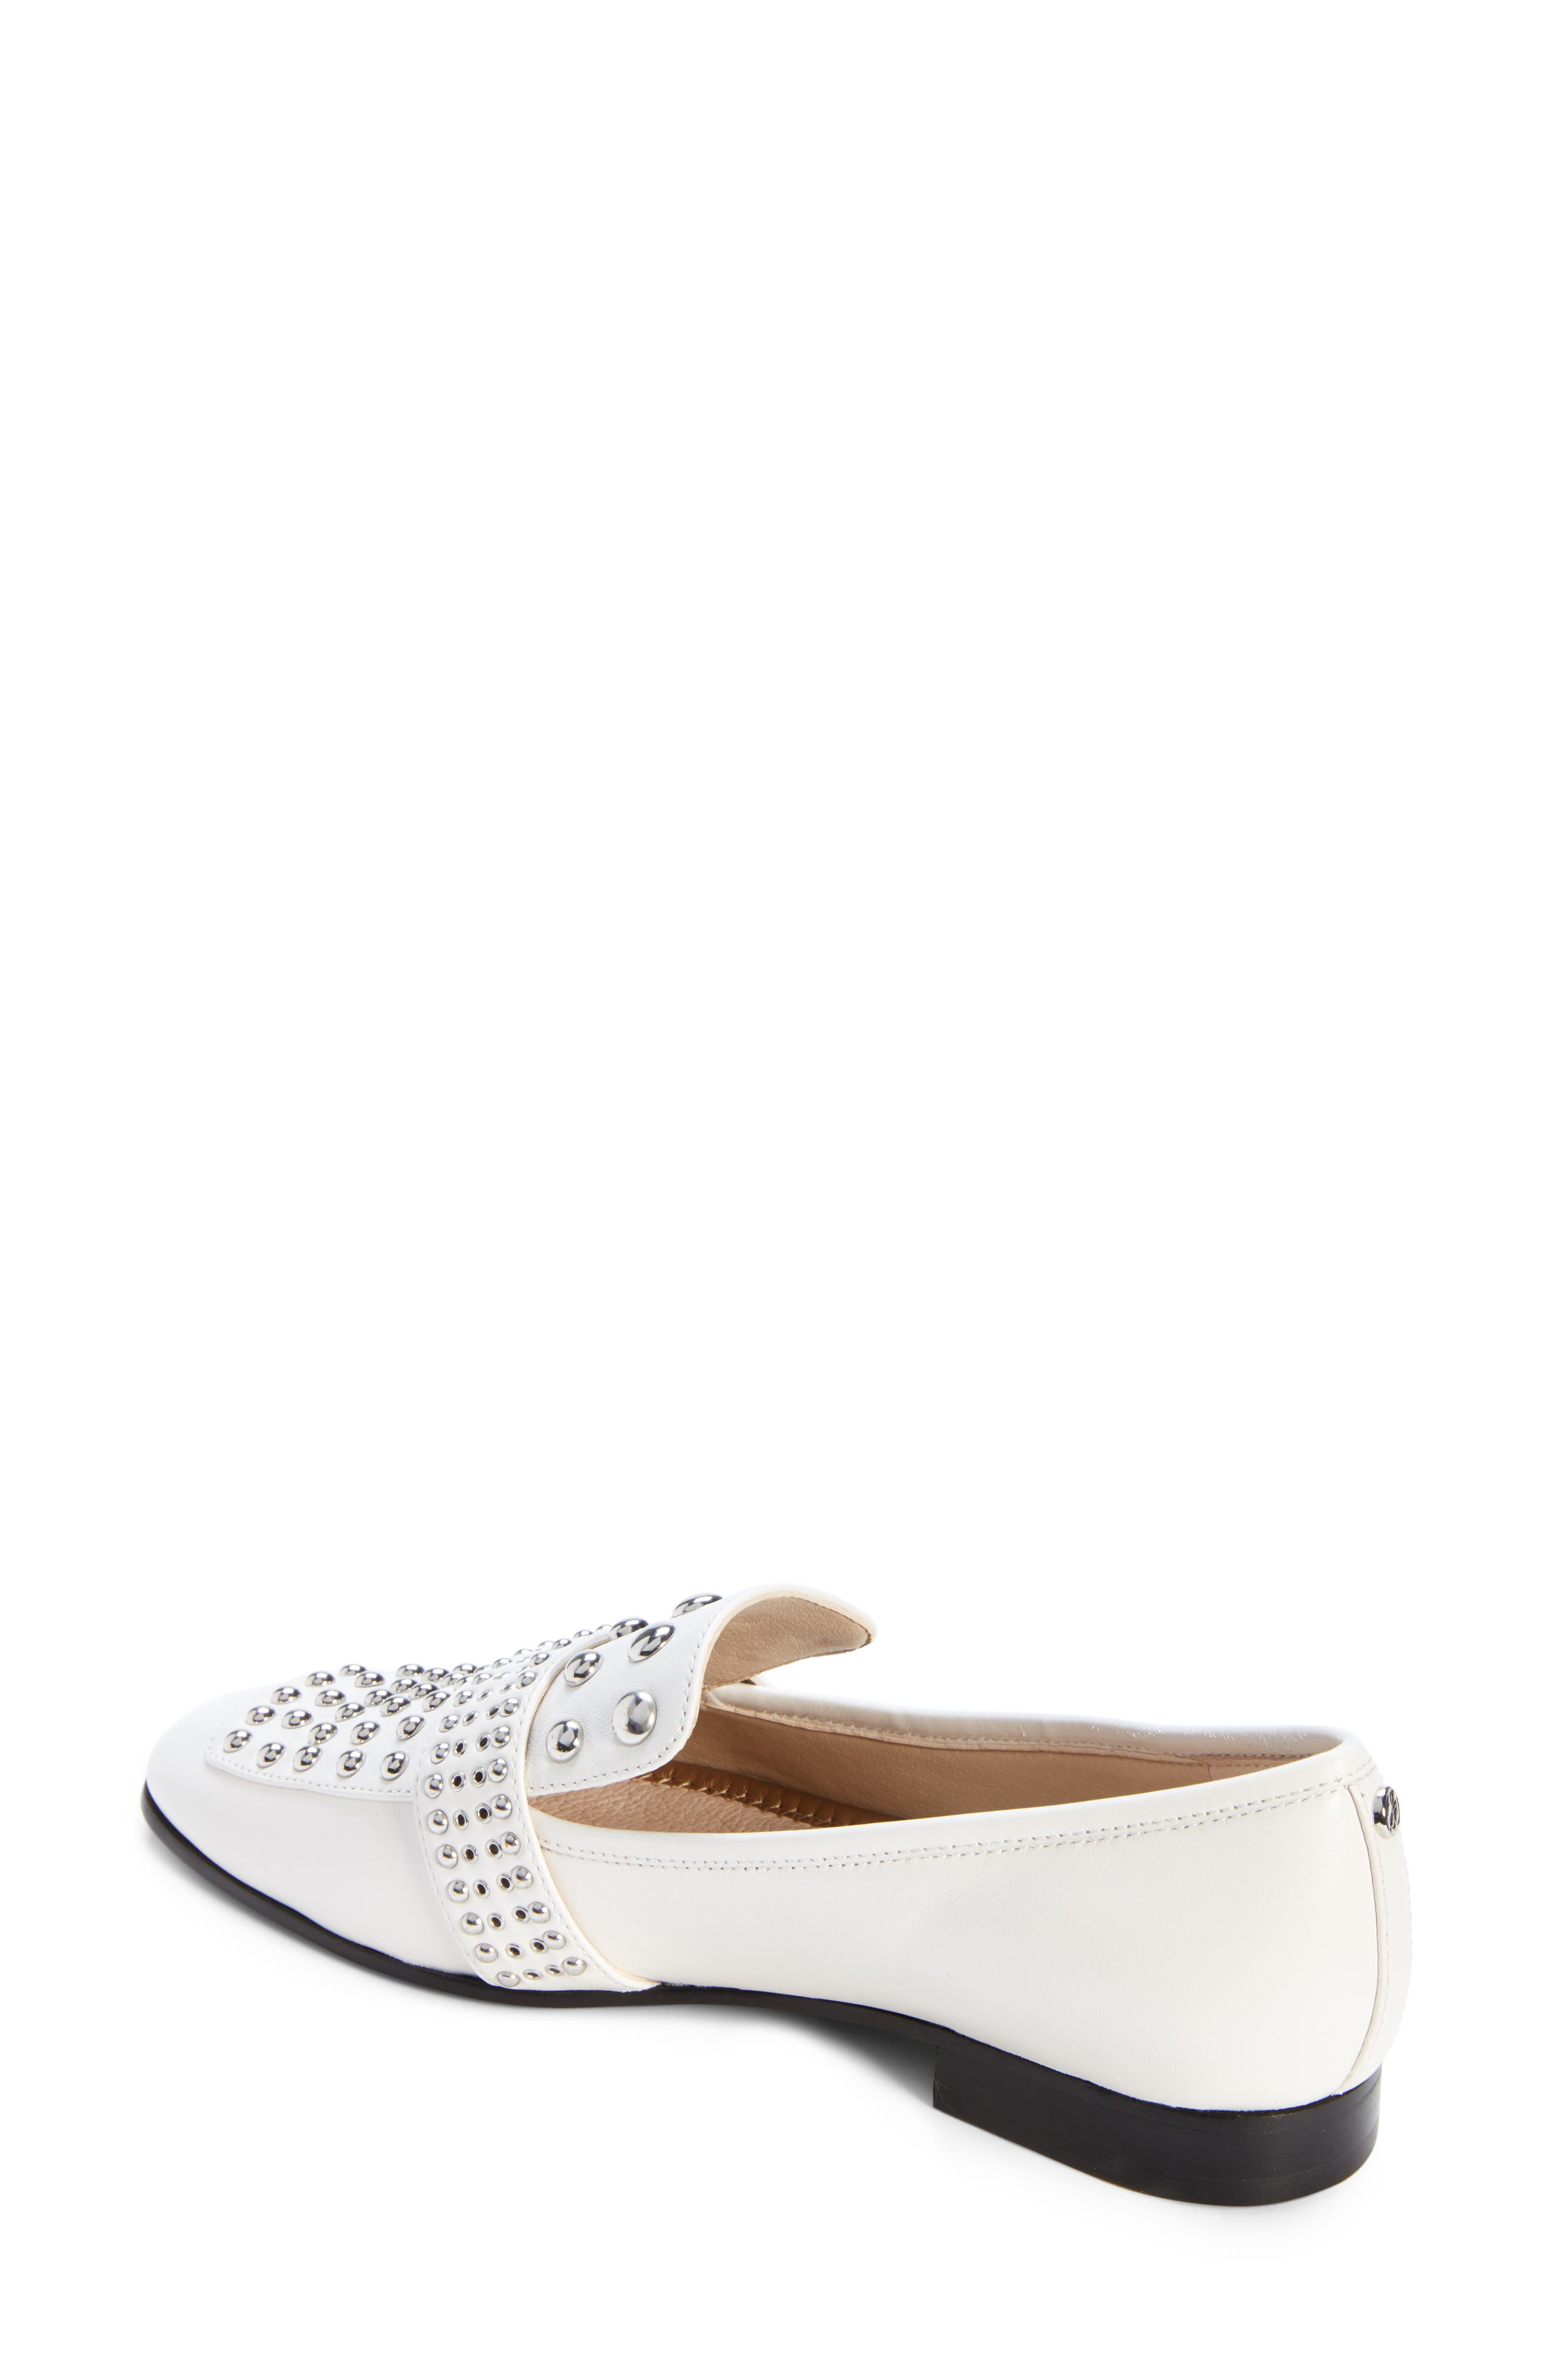 Chesney Loafer,                             Alternate thumbnail 2, color,                             BRIGHT WHITE LEATHER